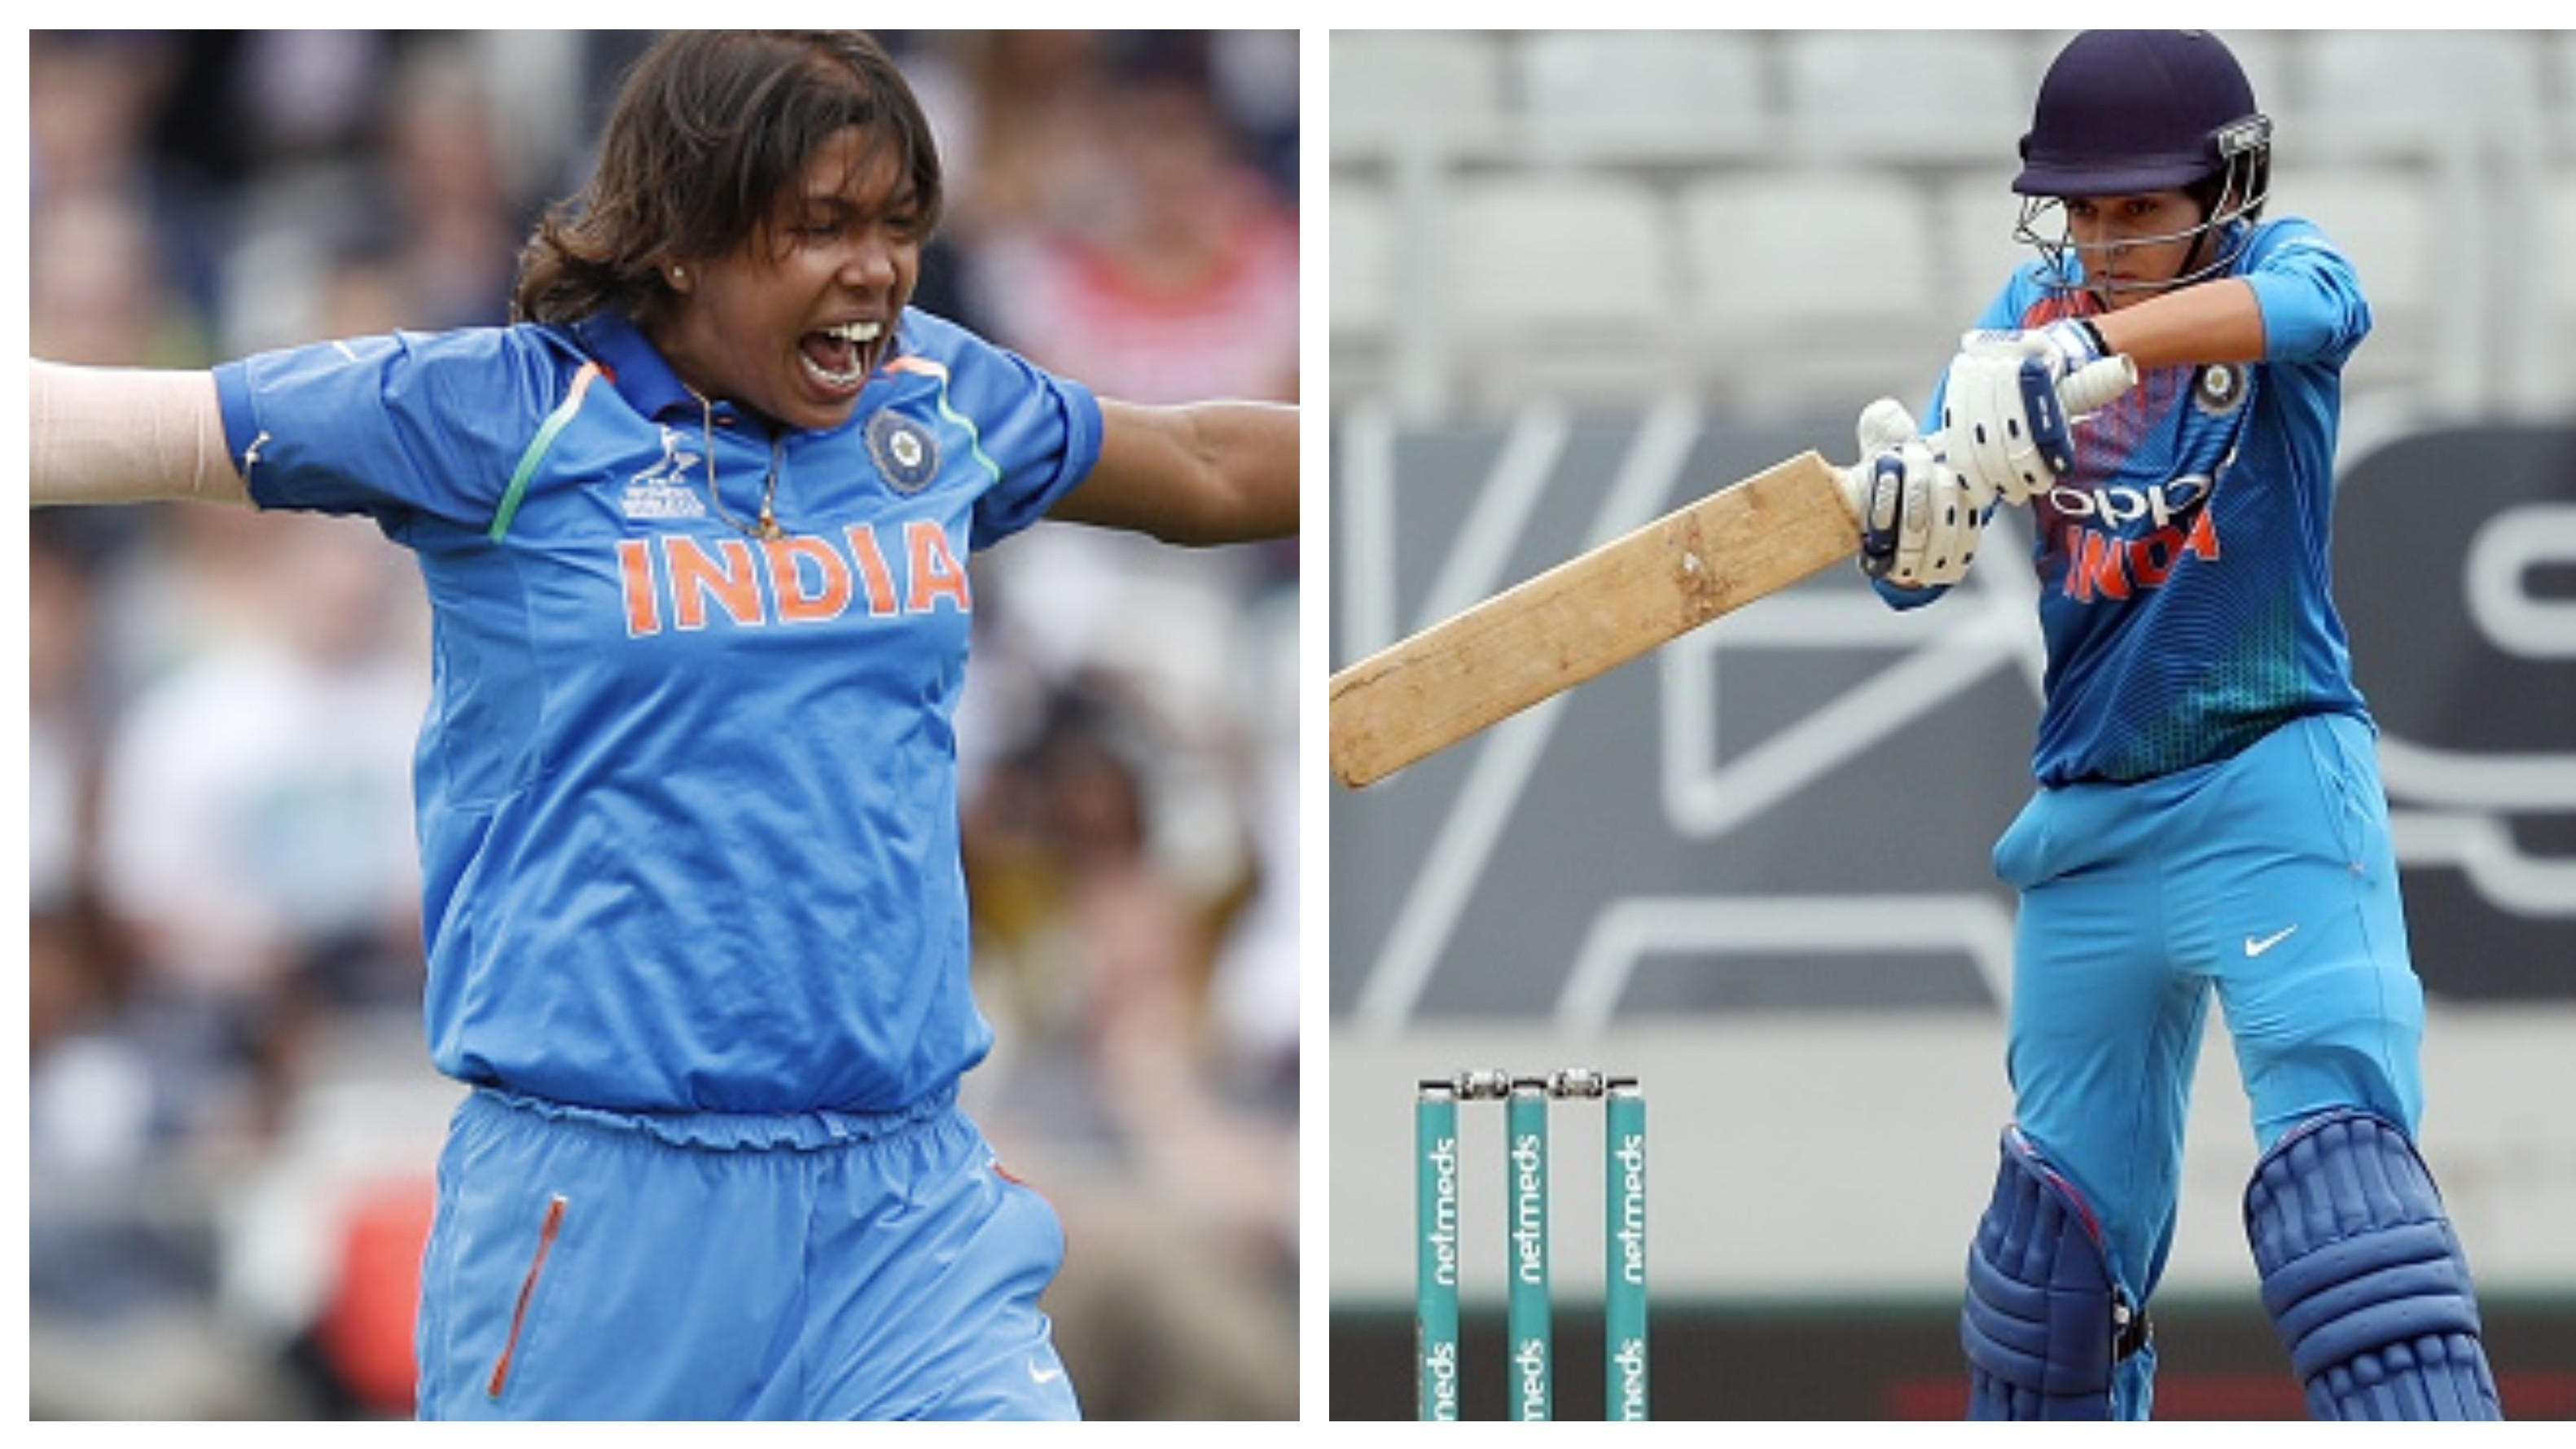 INDW v SAW 2019: Jhulan Goswami, Priya Punia star in India's emphatic win in the first ODI